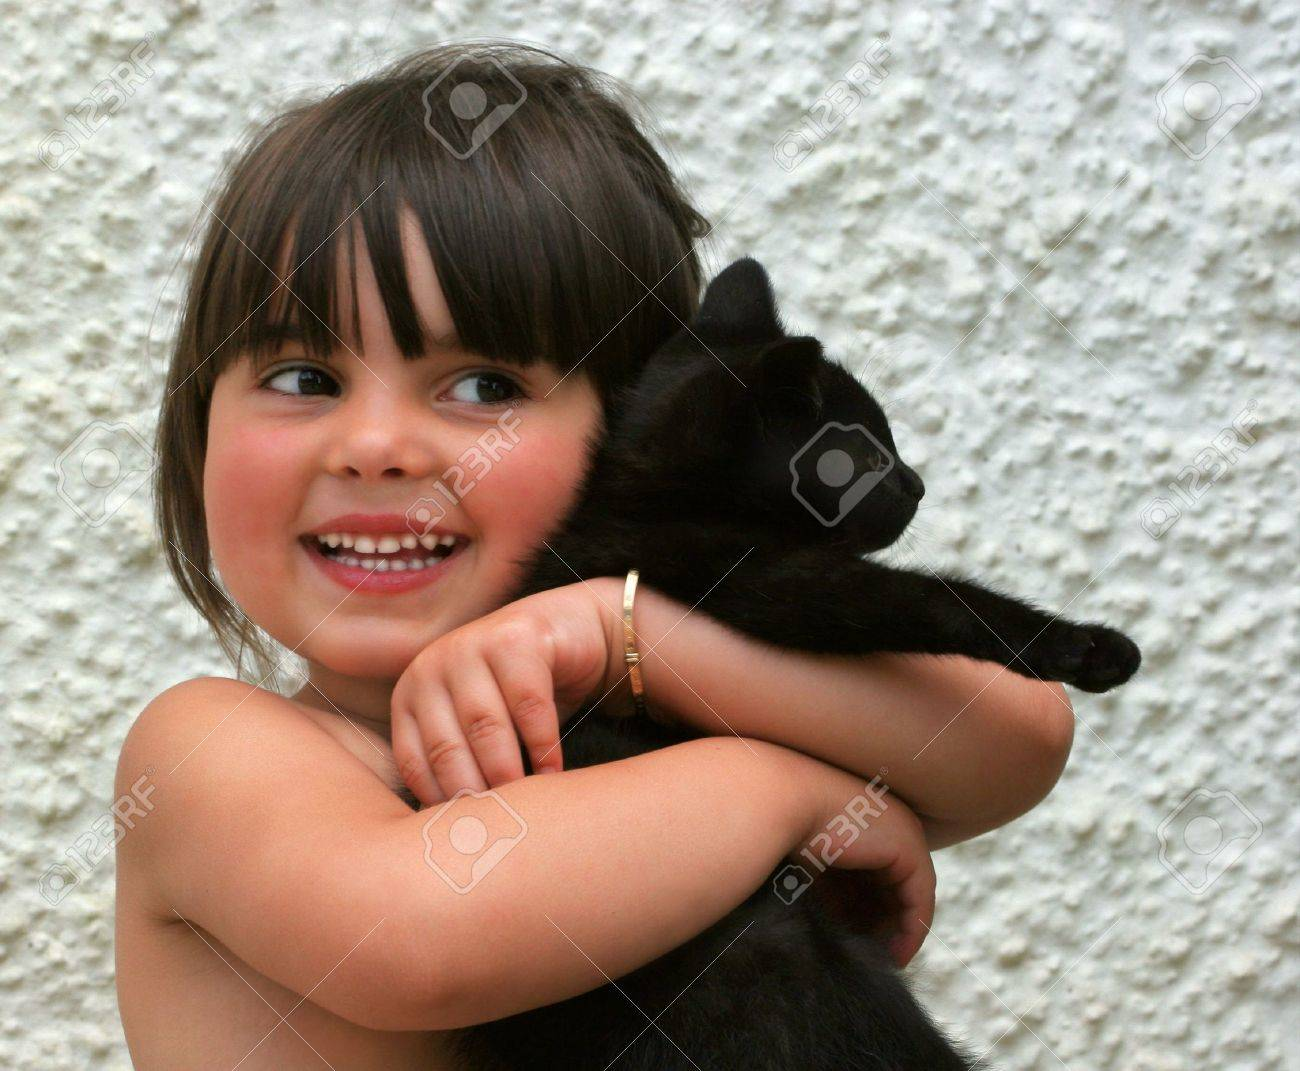 Little girl smiling and holding an all black kitten in her arms. Stock Photo - 333201